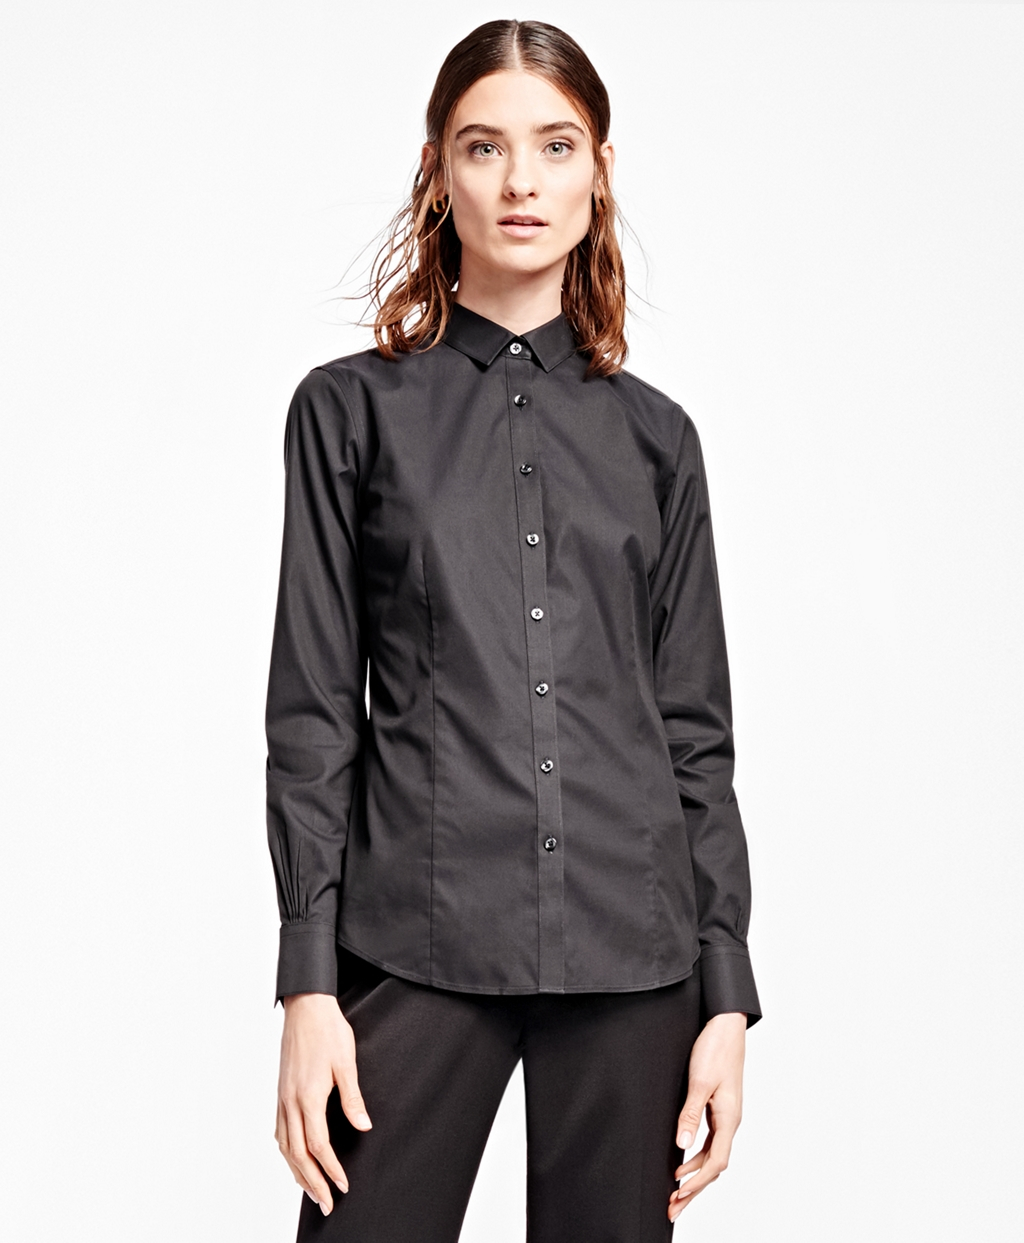 Brooks brothers petite non iron tailored fit dress shirt for Tailored fit dress shirts